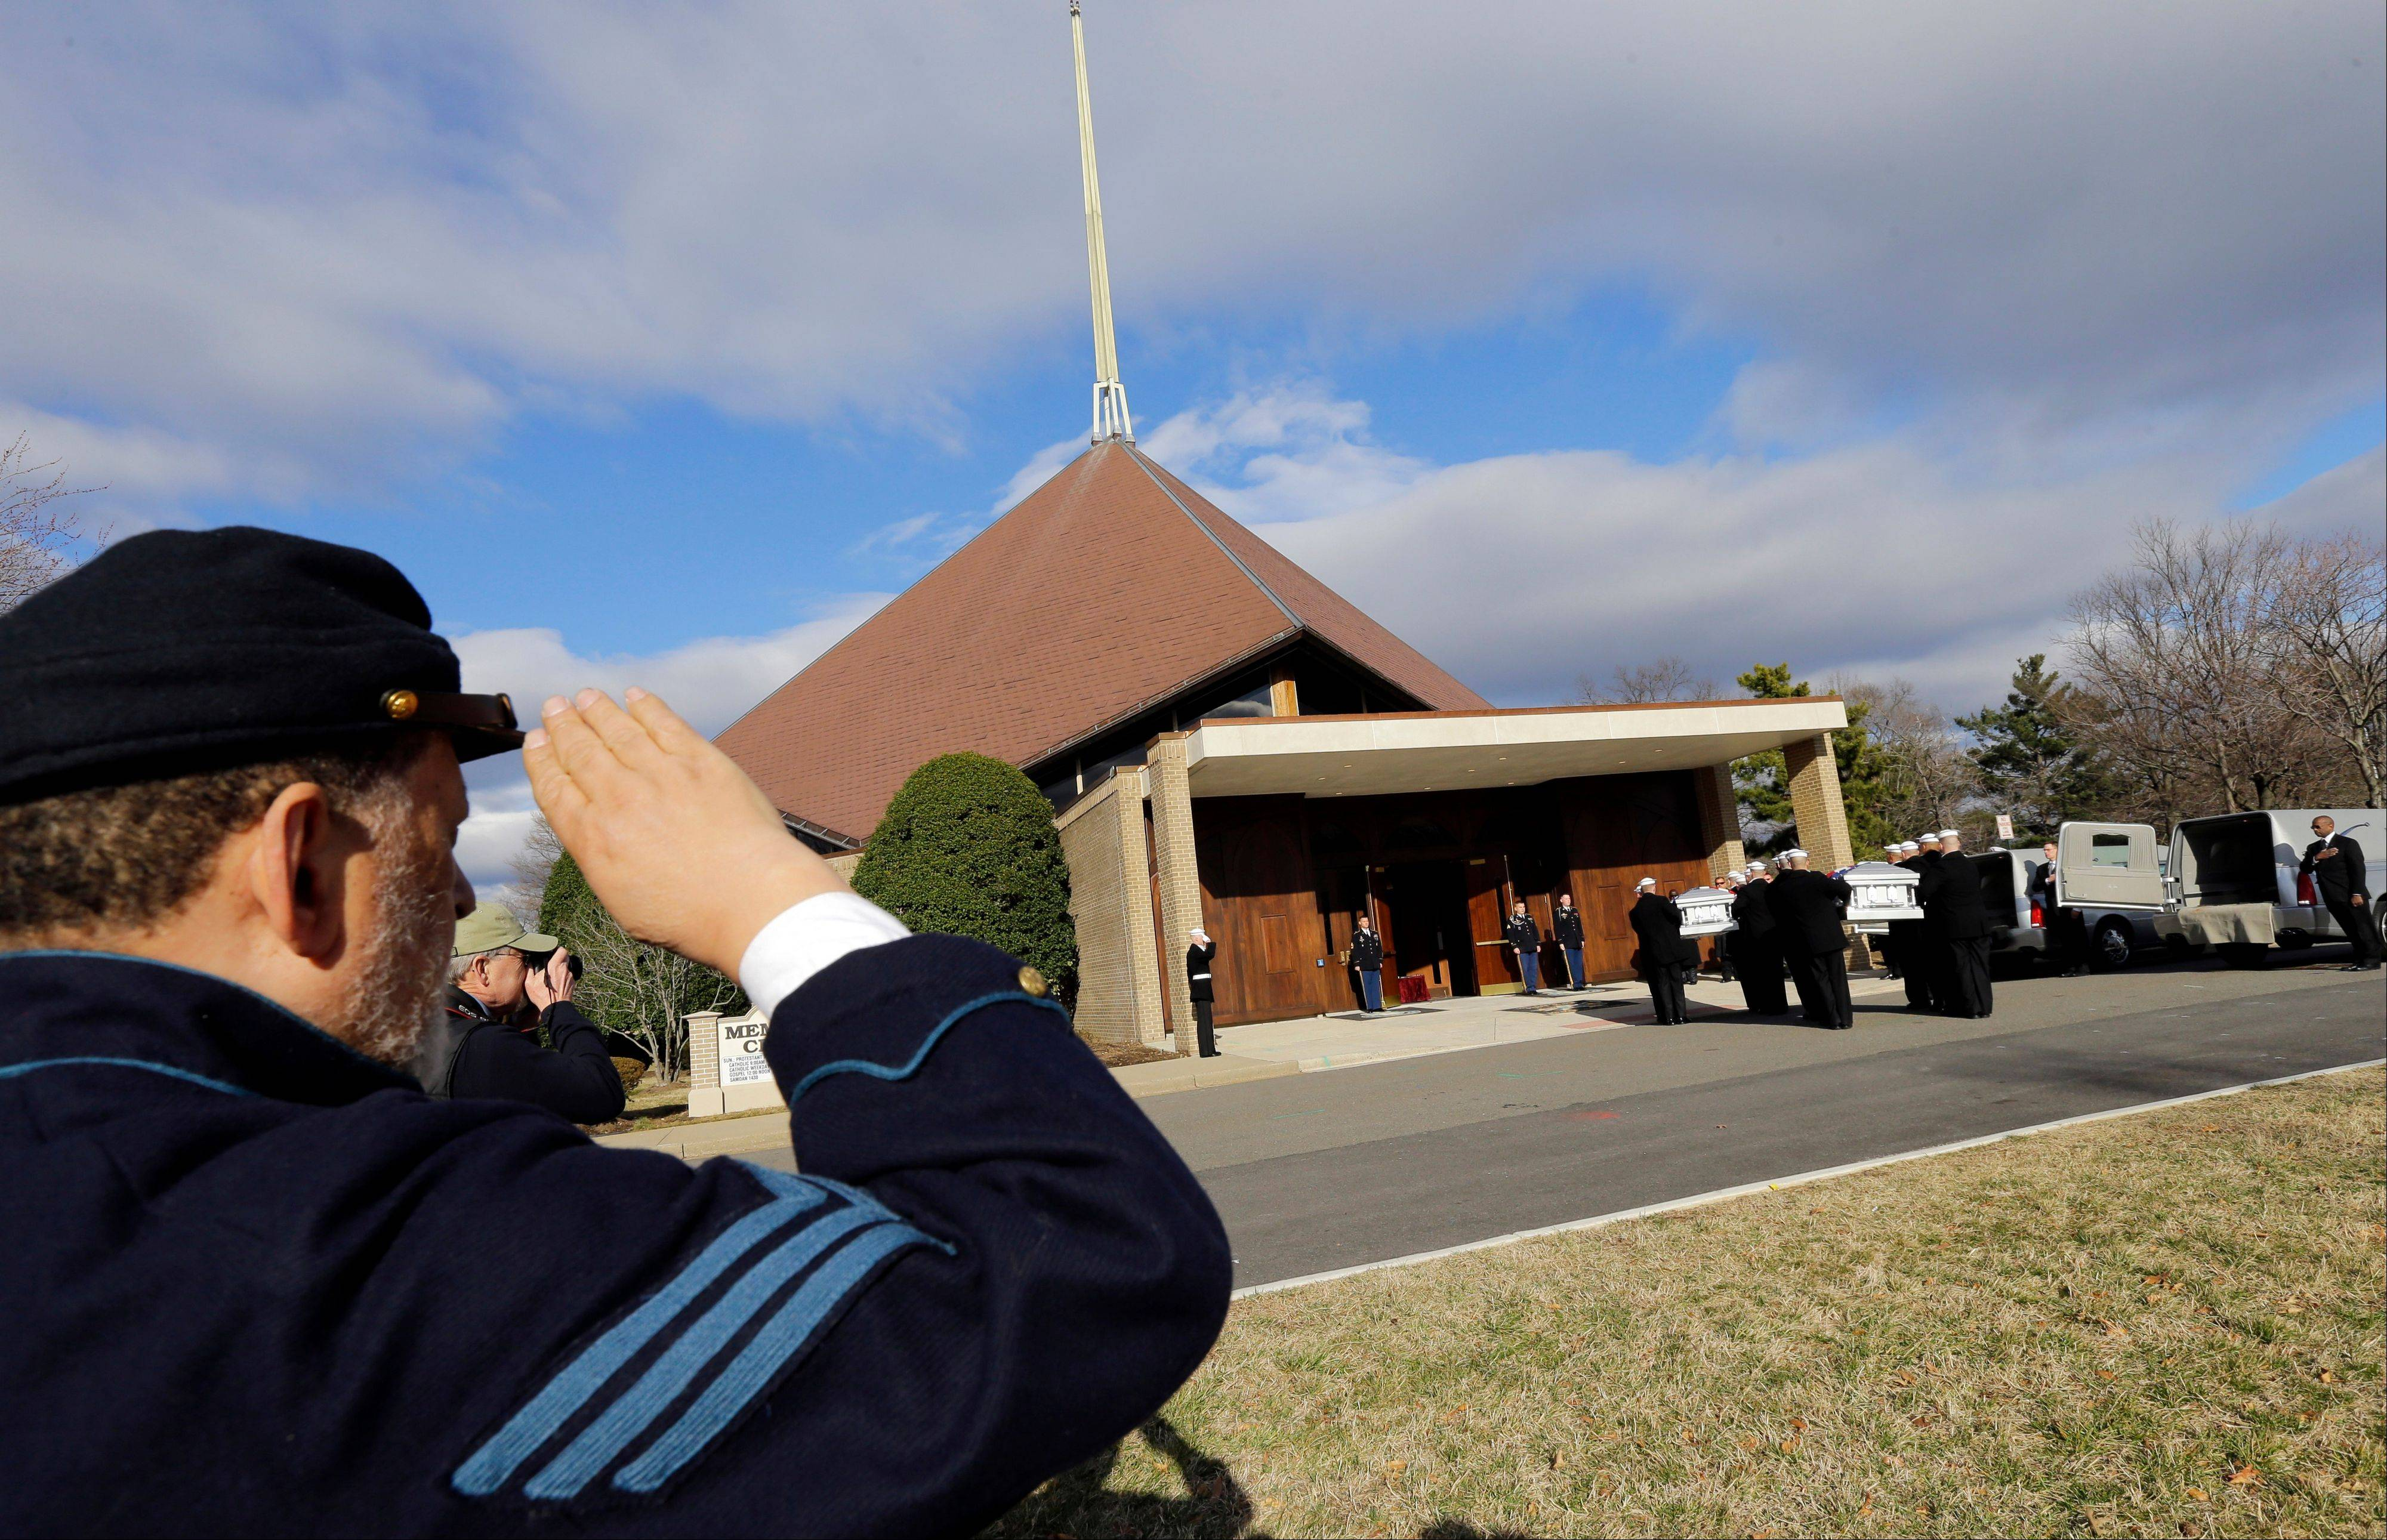 A man in Civil War period attire salutes Friday as two flag draped caskets arrive at Fort Meyer Memorial Chapel for services to honor two sailors from the Civil War ship, the USS Monitor.